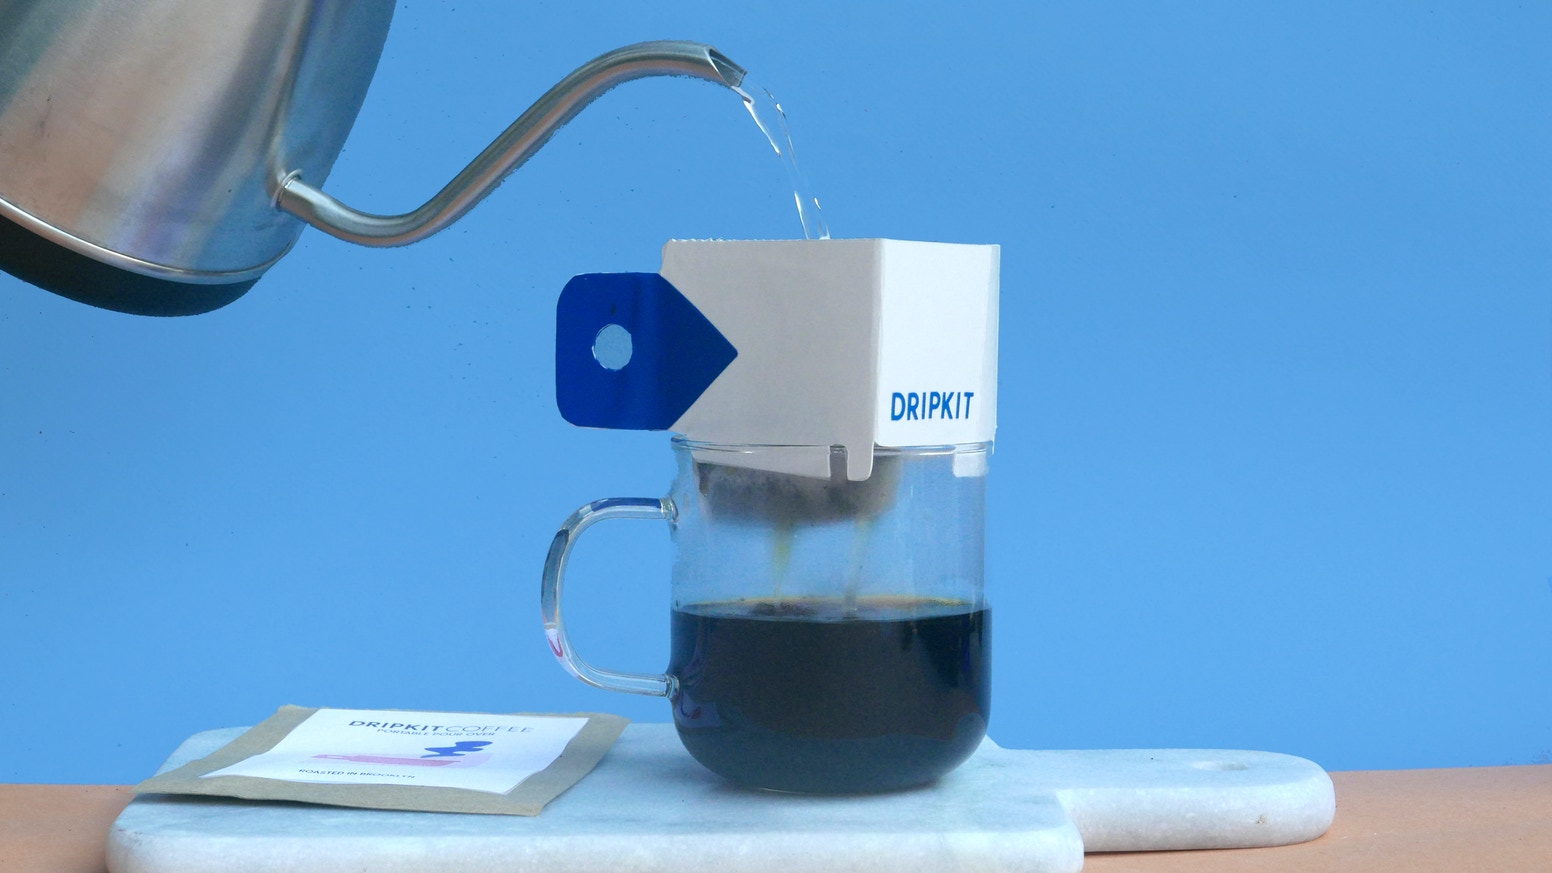 Dripkit is the pocket-sized pour over you've been waiting for - a new way to make great coffee anywhere.